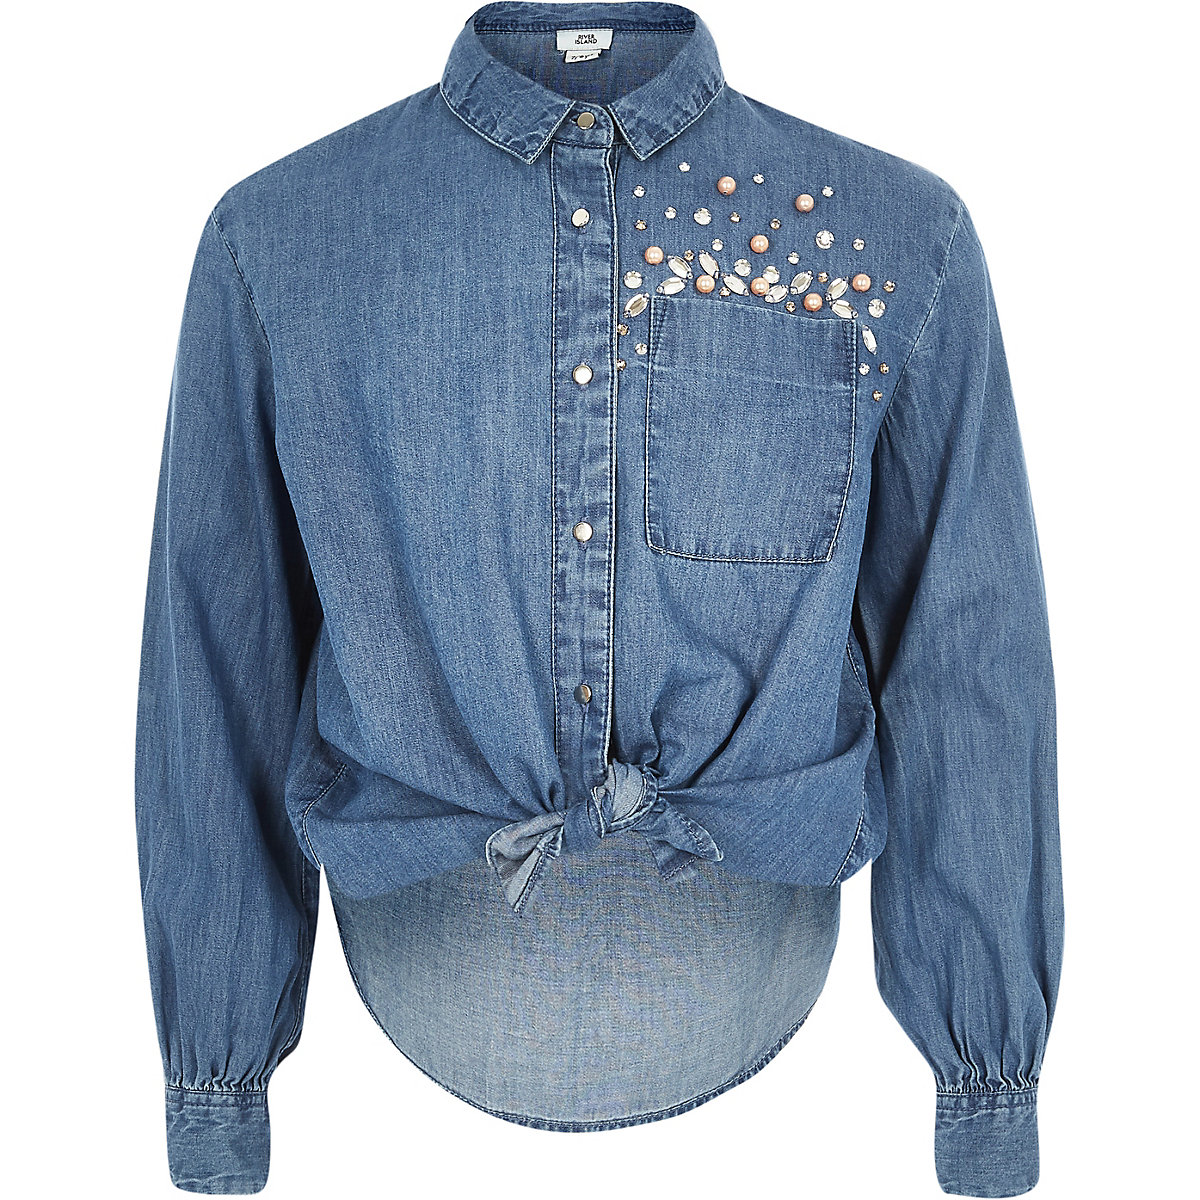 Girls blue embellished button-up tie shirt